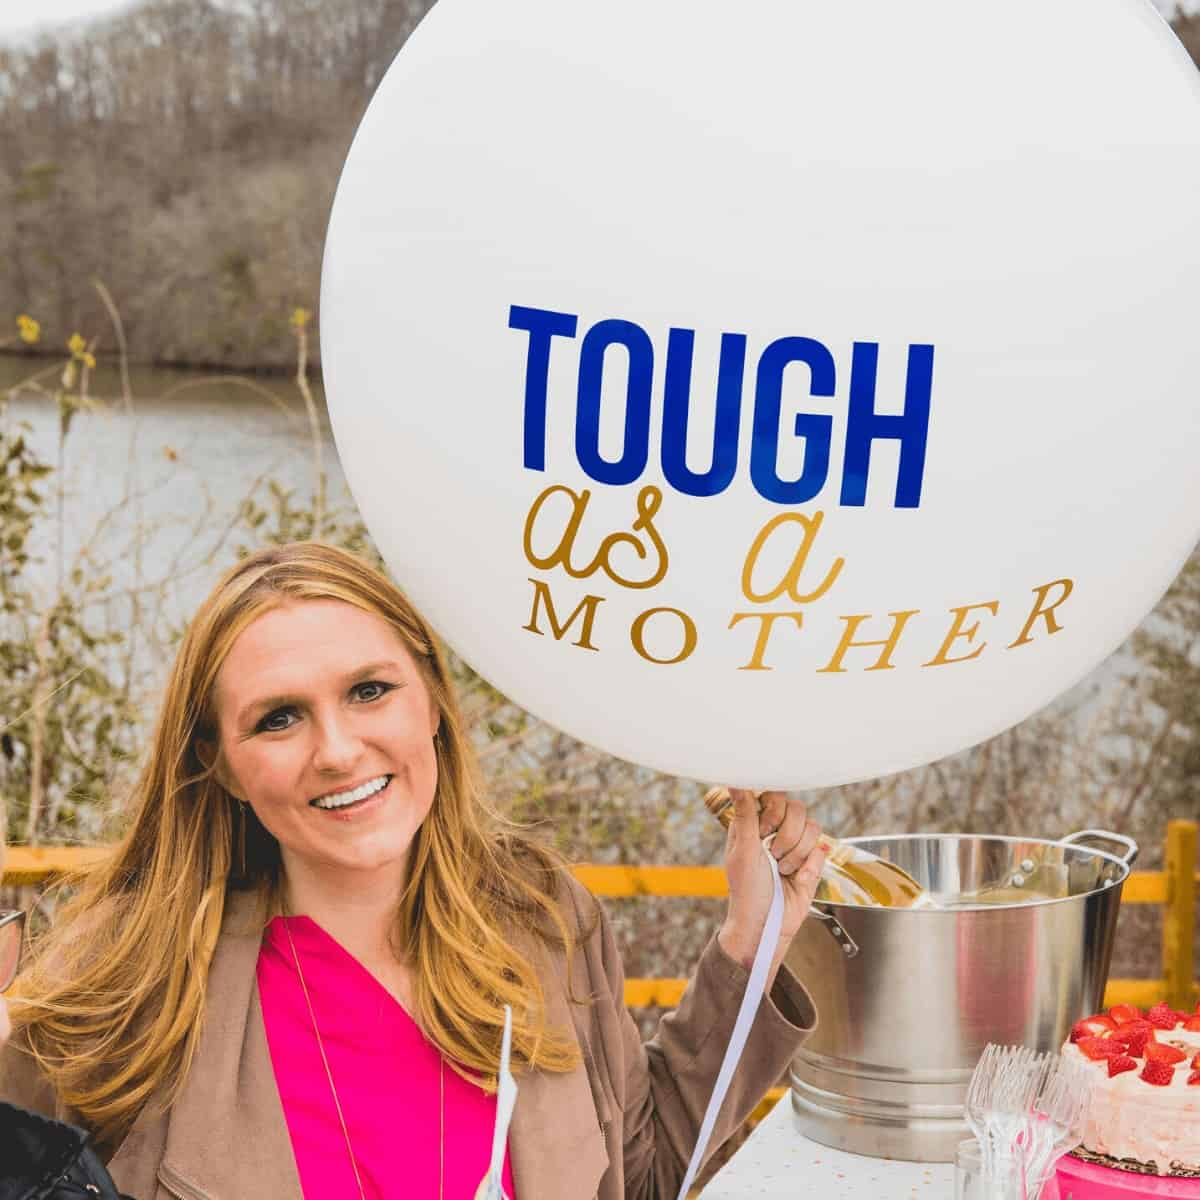 blonde-woman-in-pink-shirt-and-brown-jacket-smiling-holding-balloon-that-has-tough-as-a-mother-written-on-it